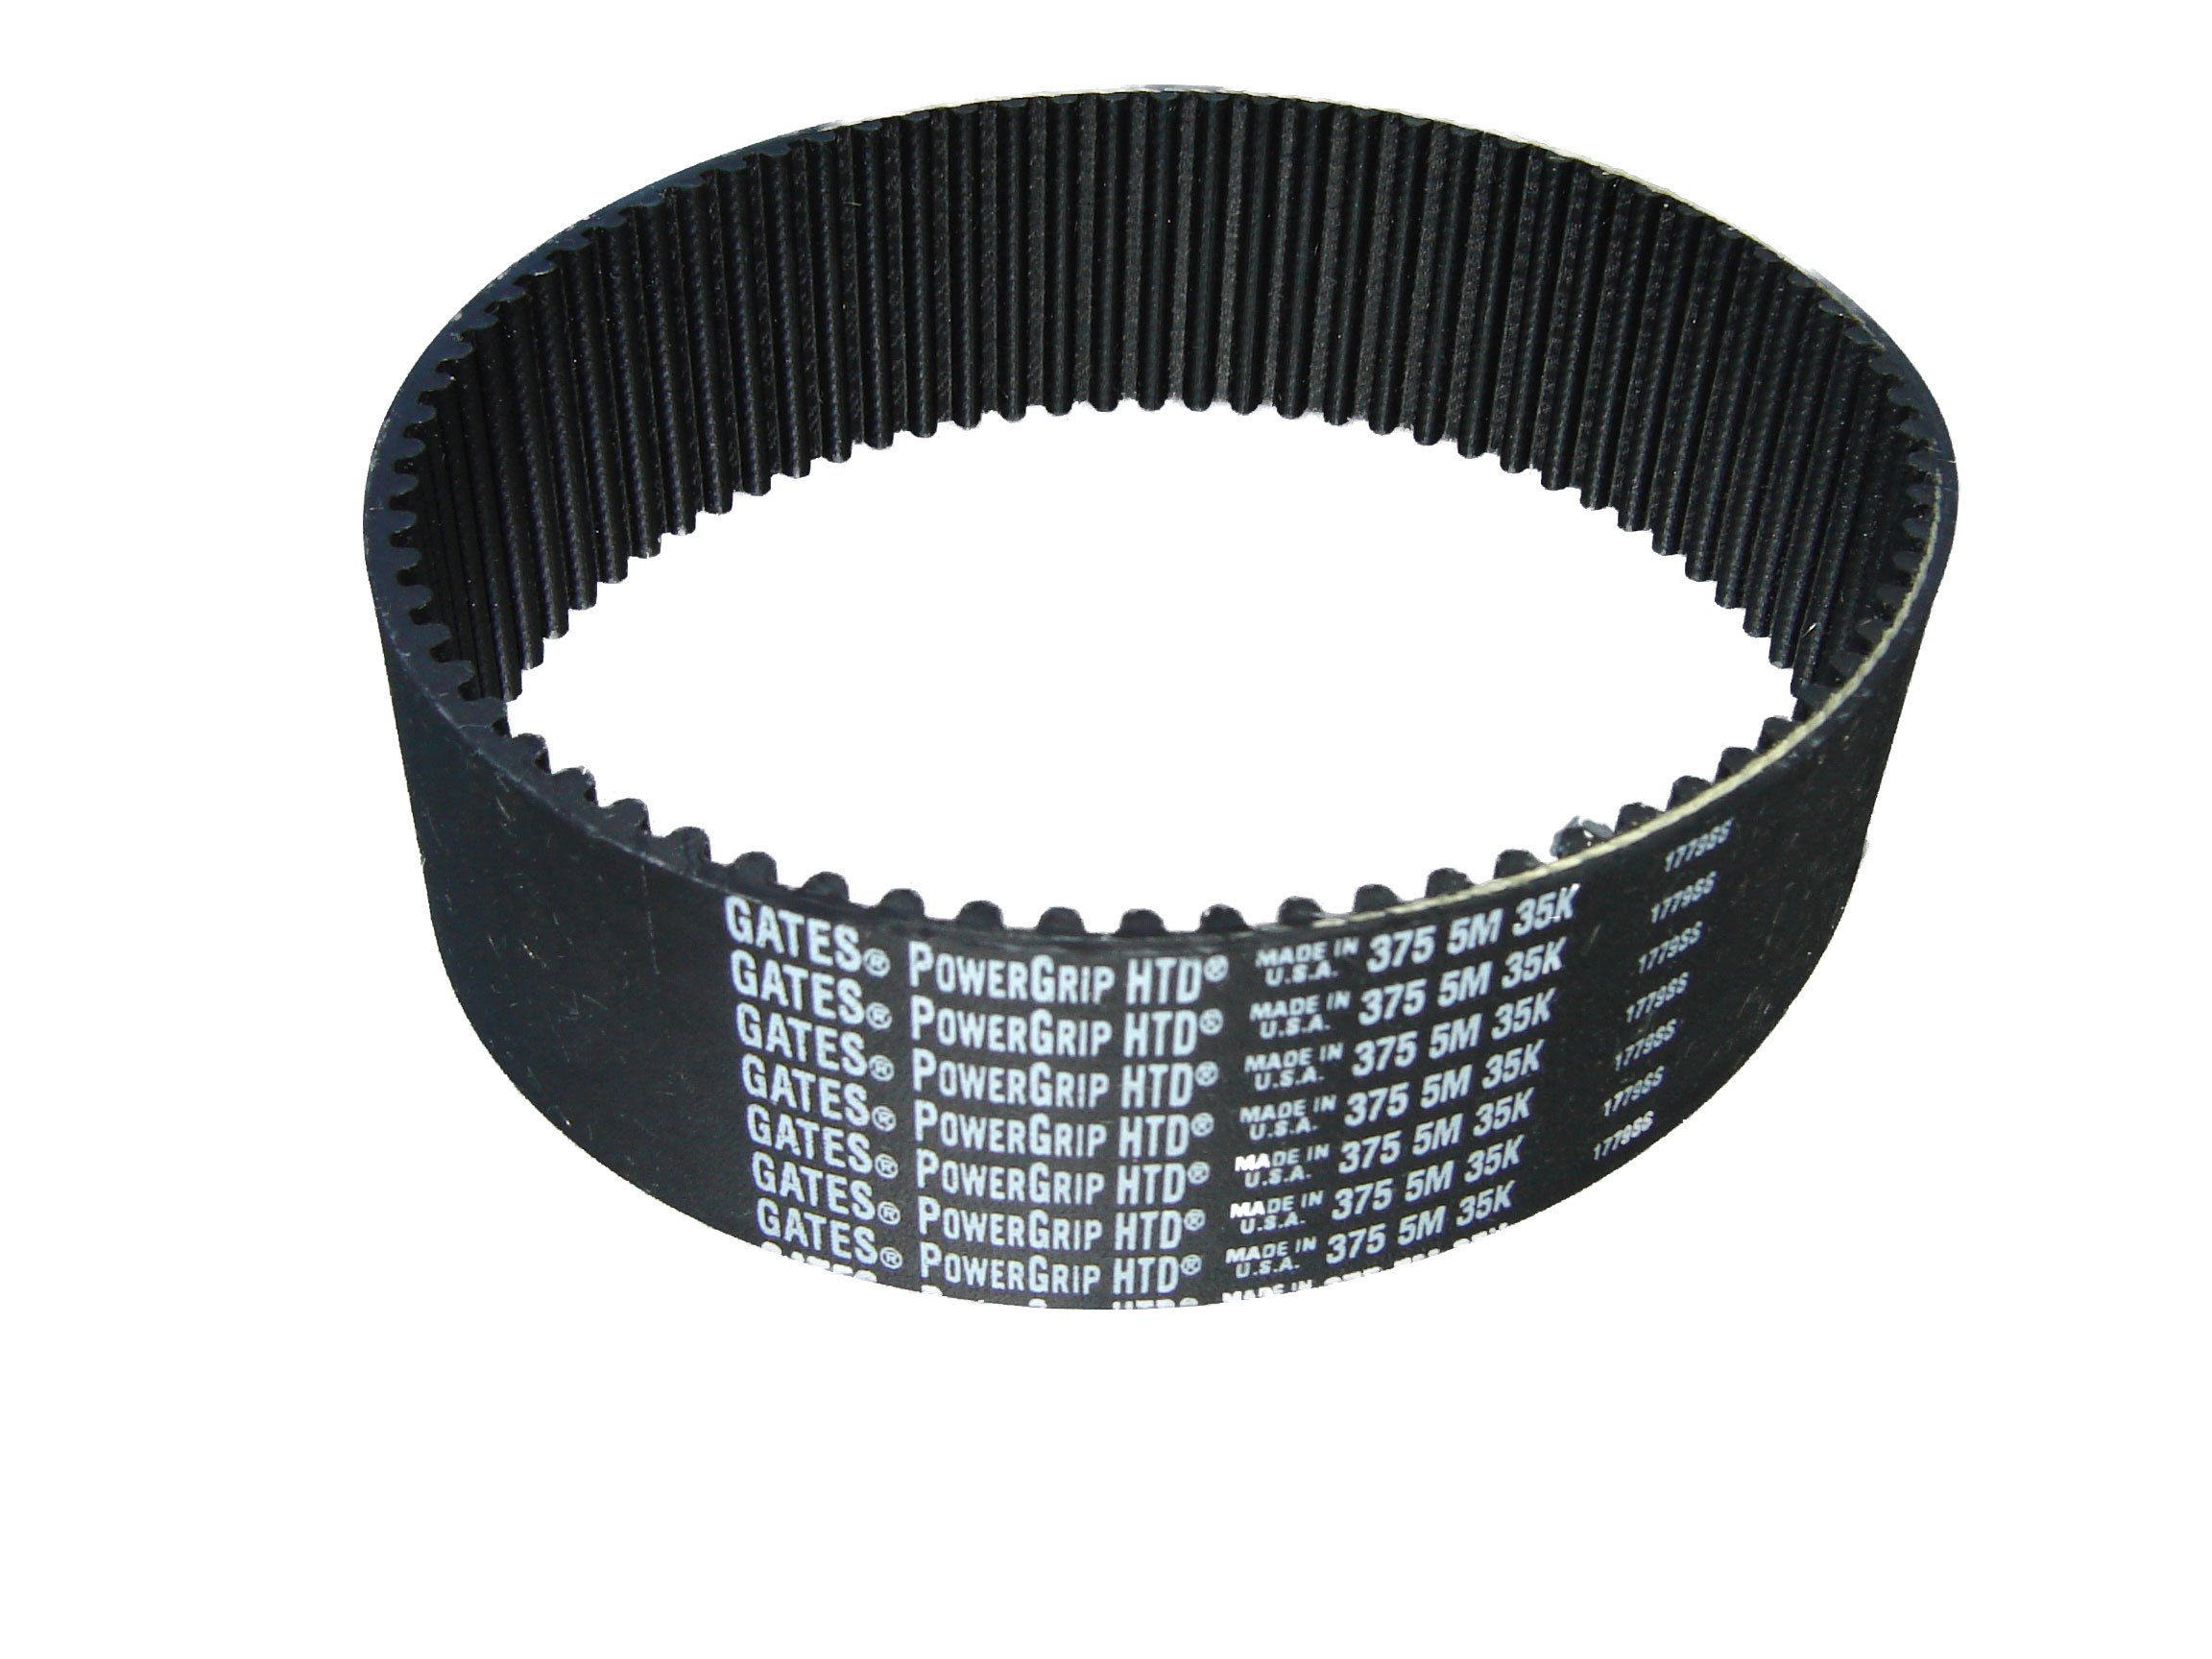 Coolcharger Cog Belt Gates PowerGrip 375 5M 35K